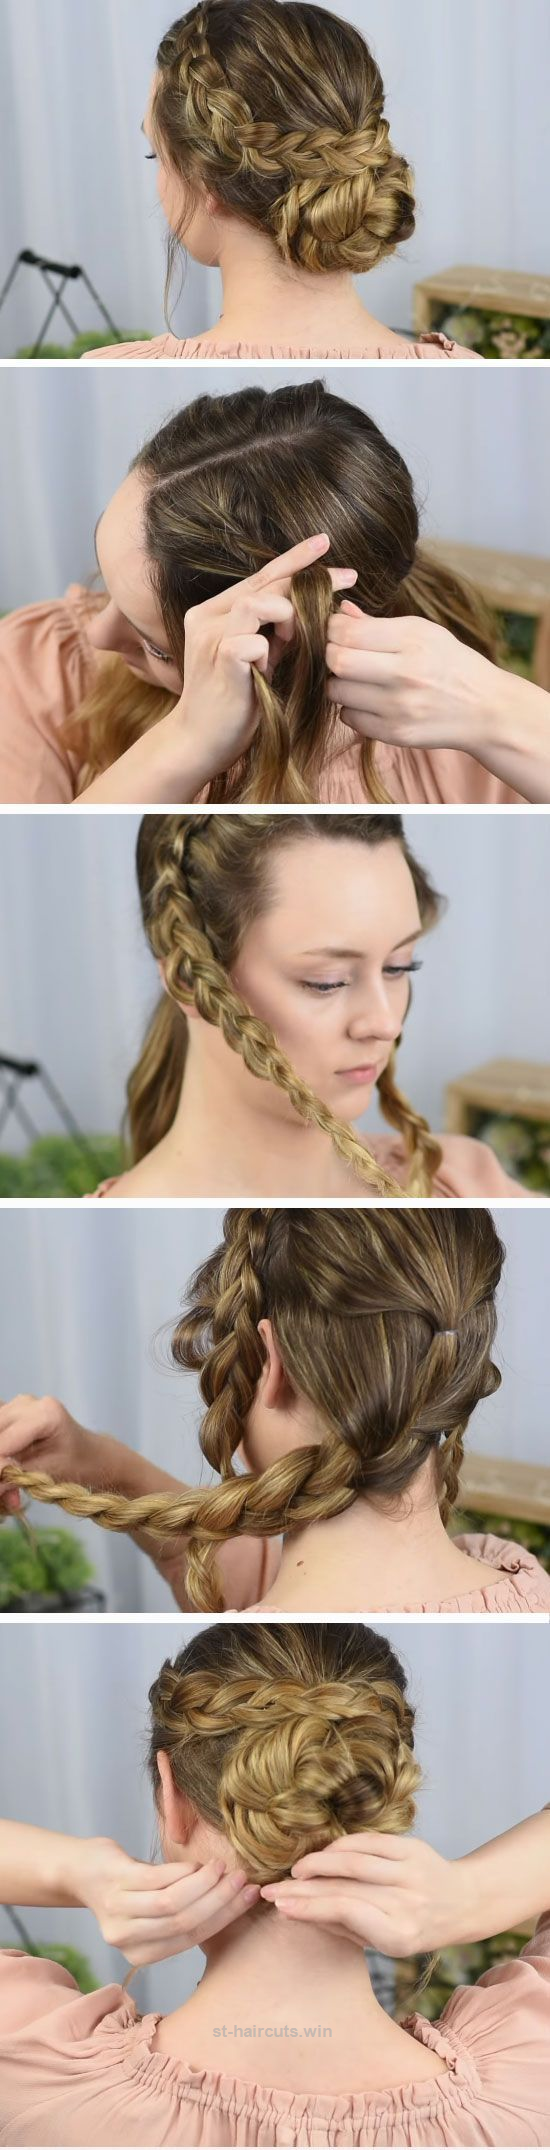 Wonderful dutch braided up do quick diy prom hairstyles for medium hair and easy homecoming long the post also coiffures pinterest rh